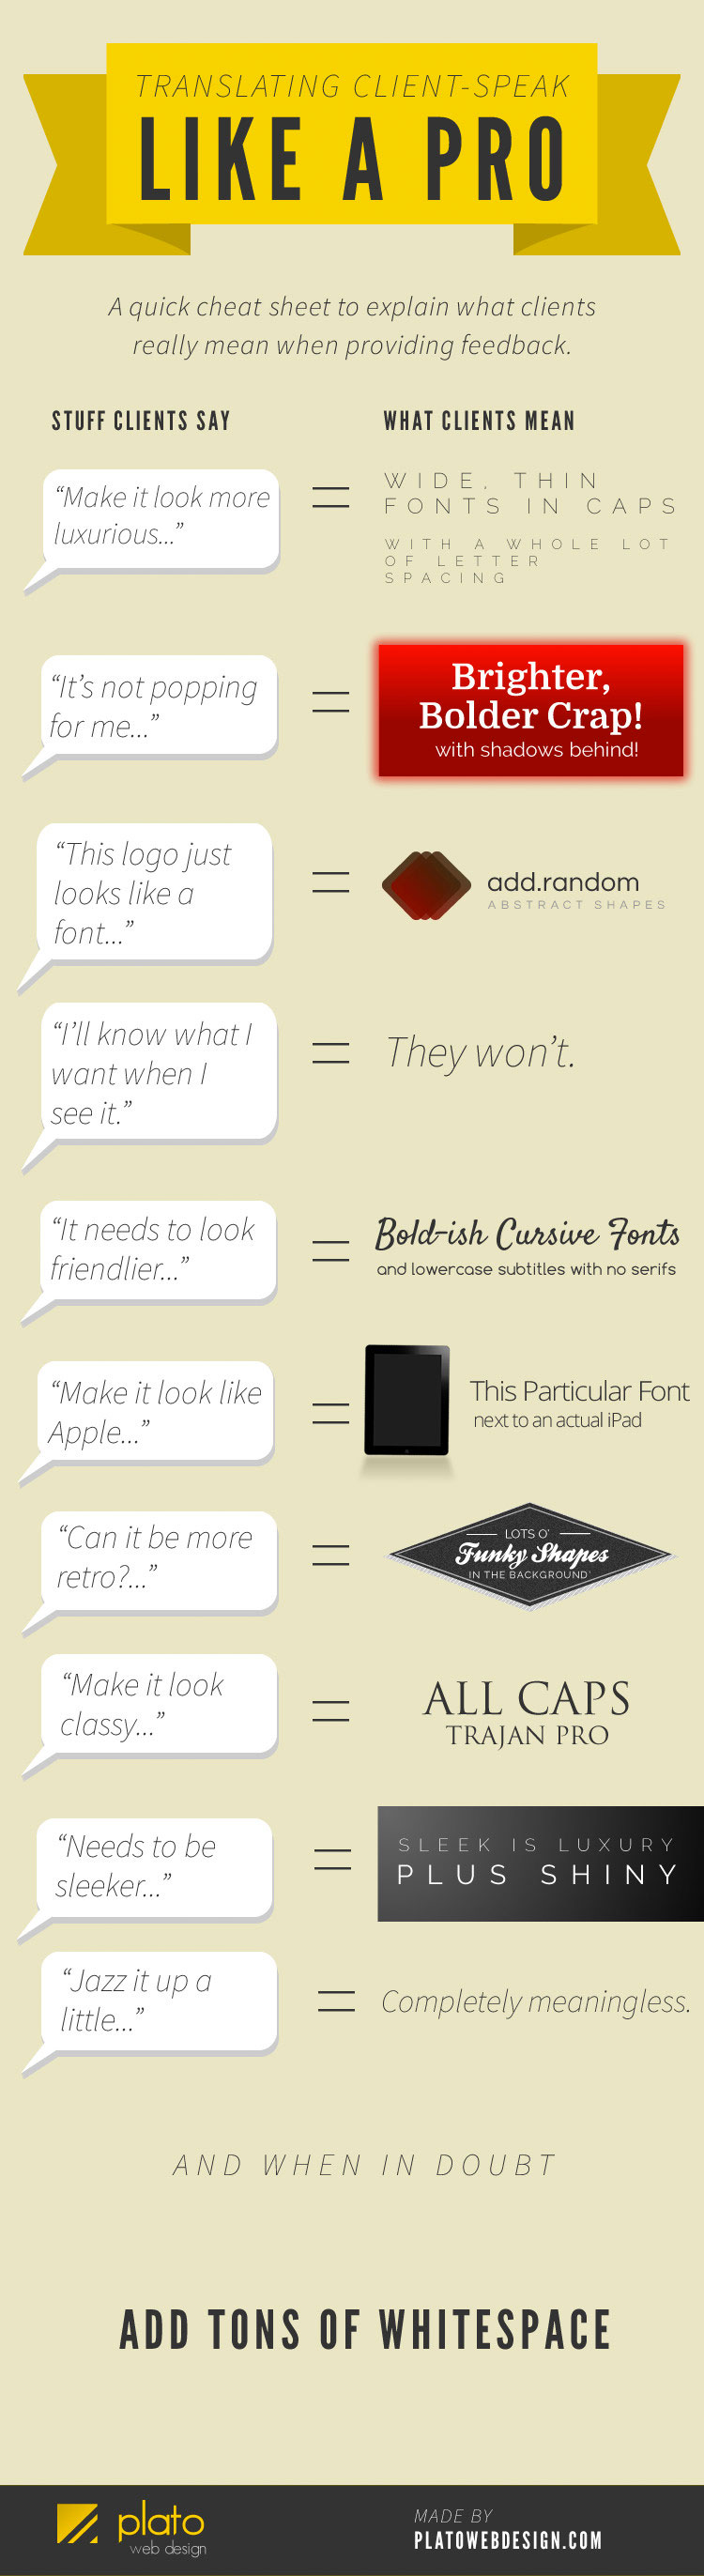 Designer's Guide To What Clients Really Mean When Providing Feedback [INFOGRAPHIC]